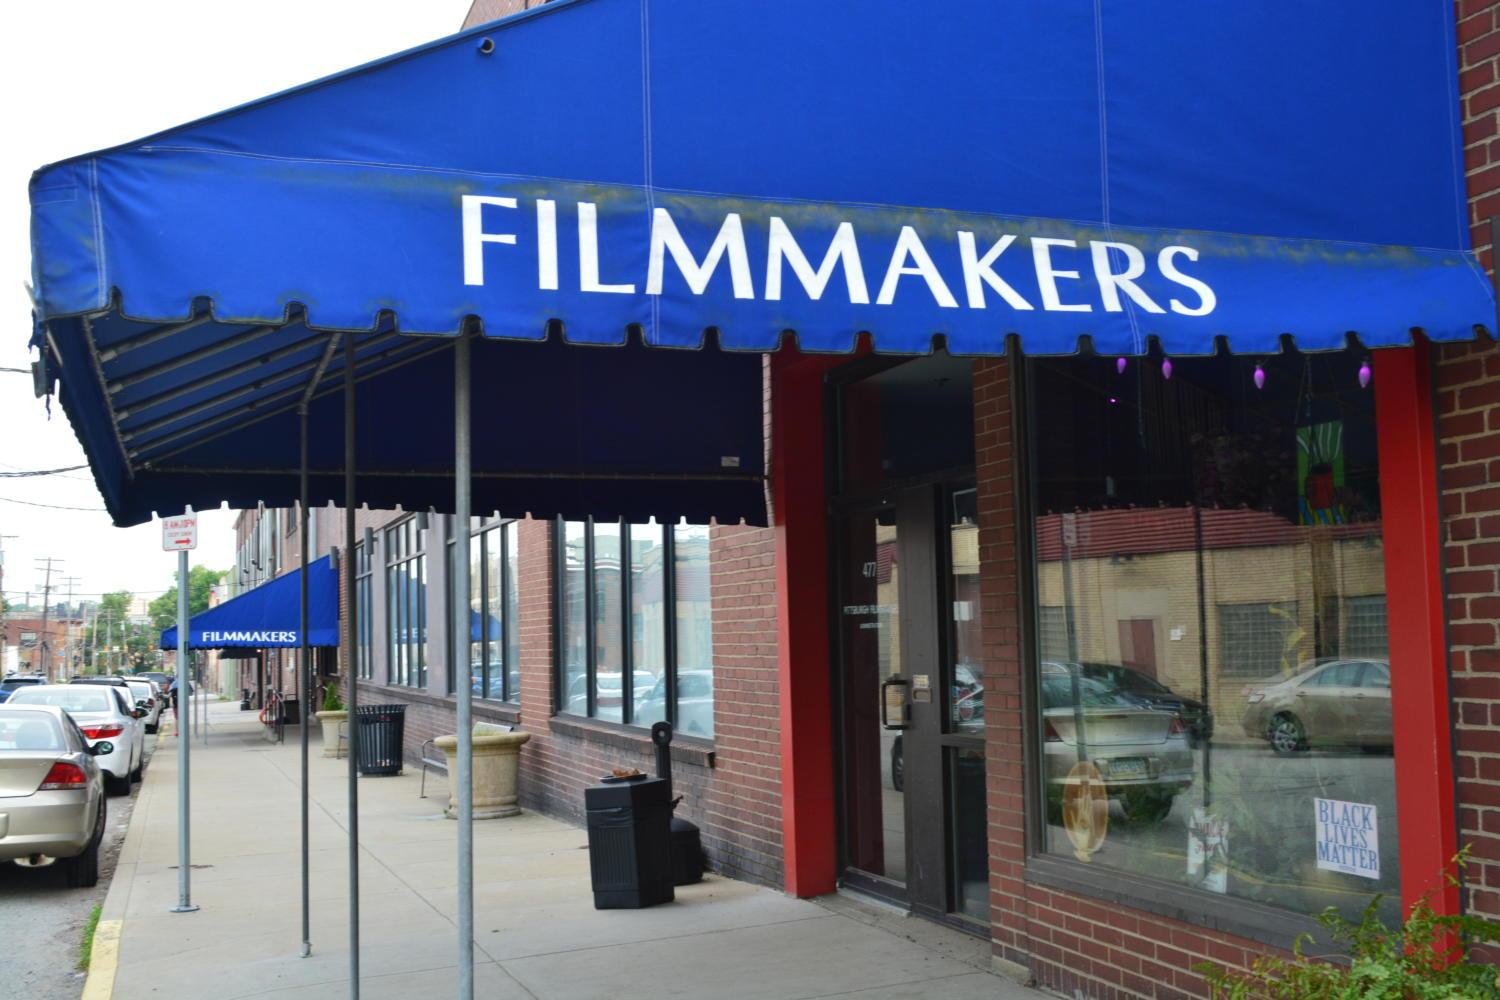 The Pittsburgh Filmmakers institute will close its Oakland location this fall amid financial difficulties. (Photo by Sareen Ali | For The Pitt News)